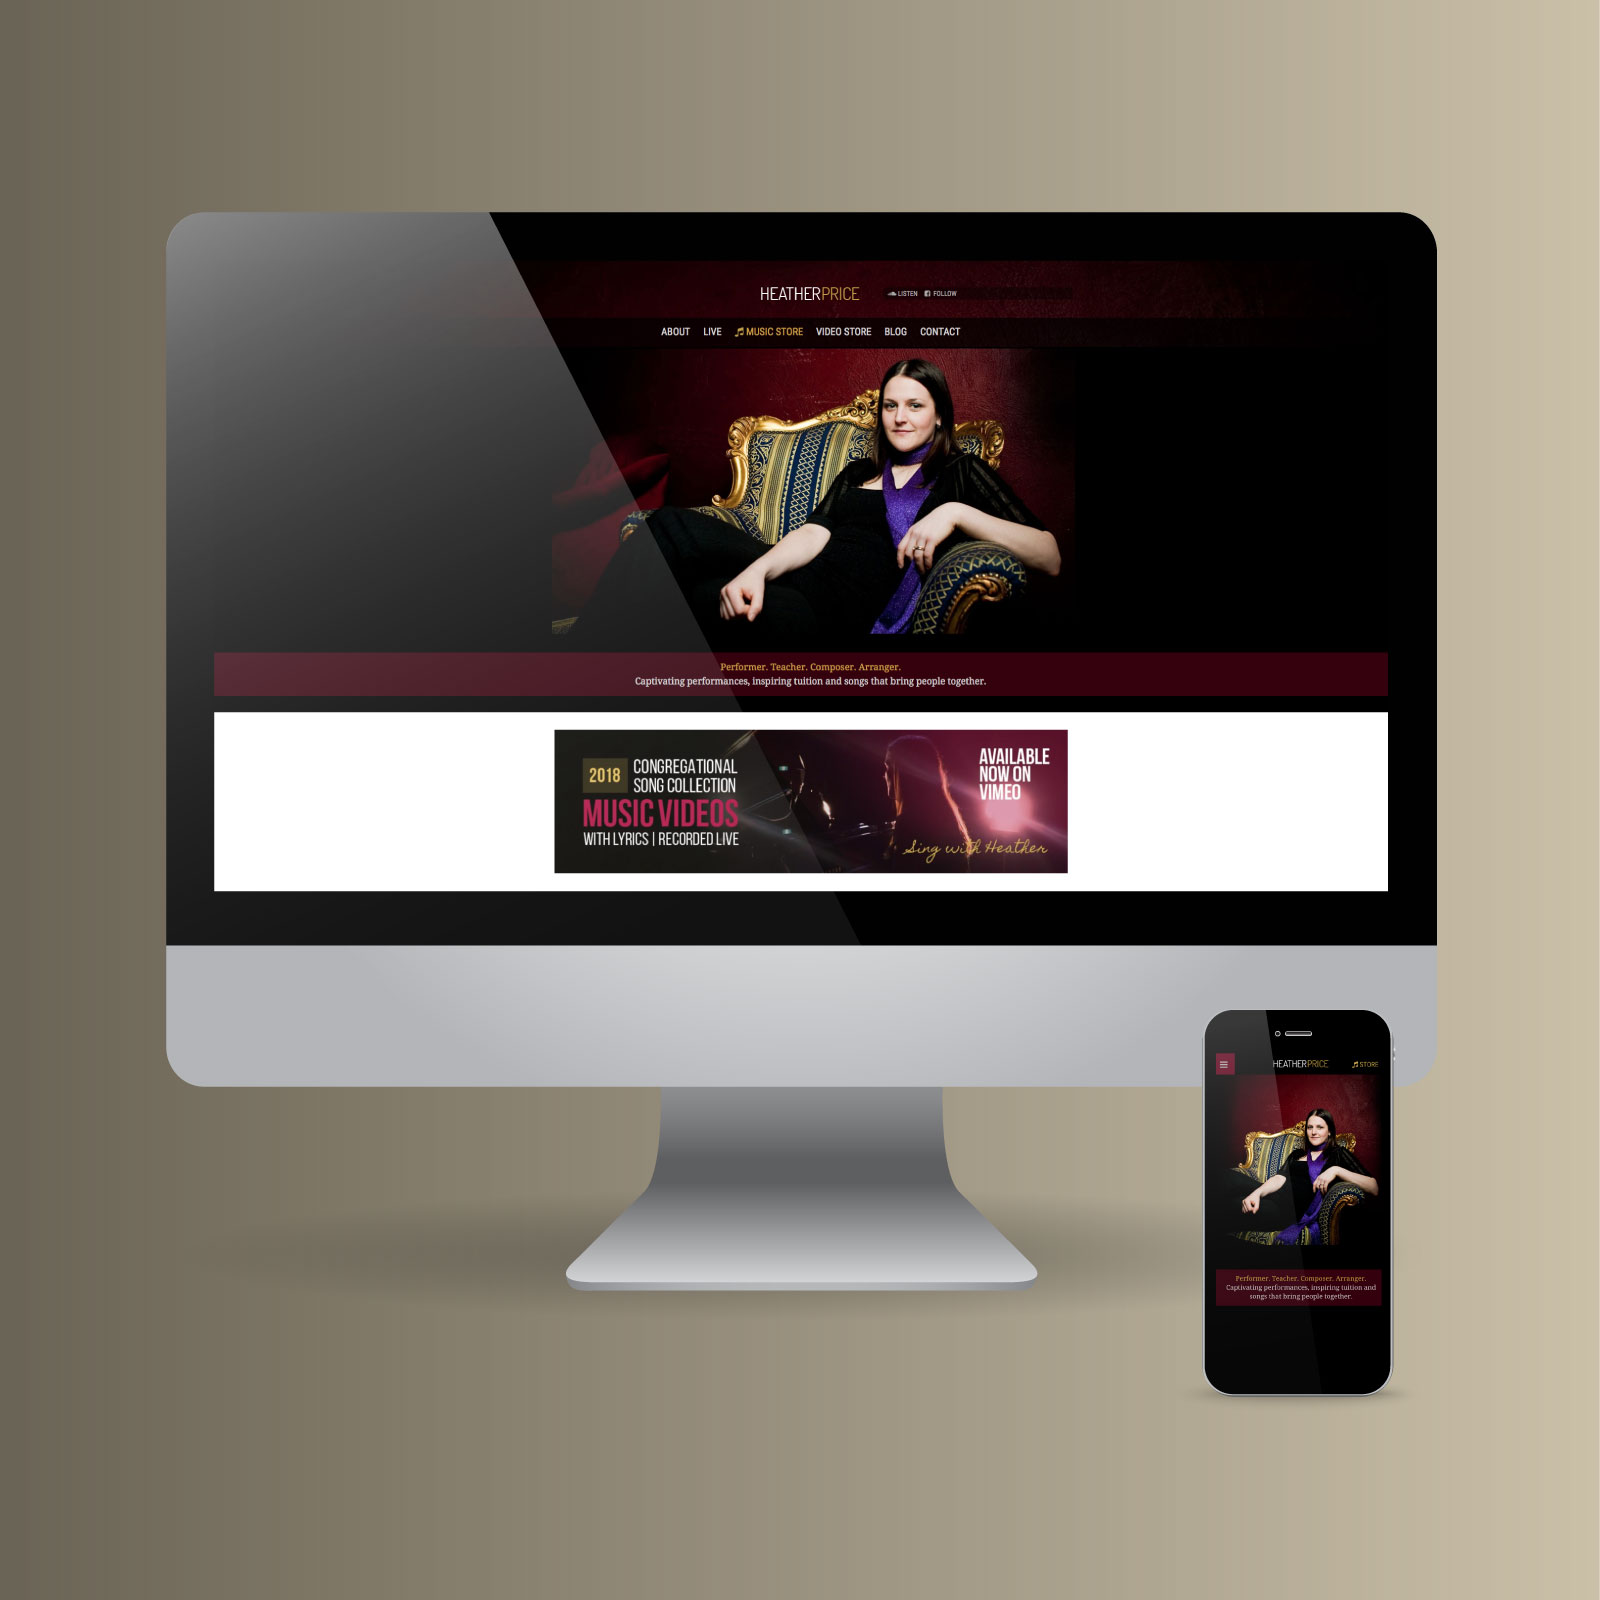 Heather Price website on Desktop computer and mobile